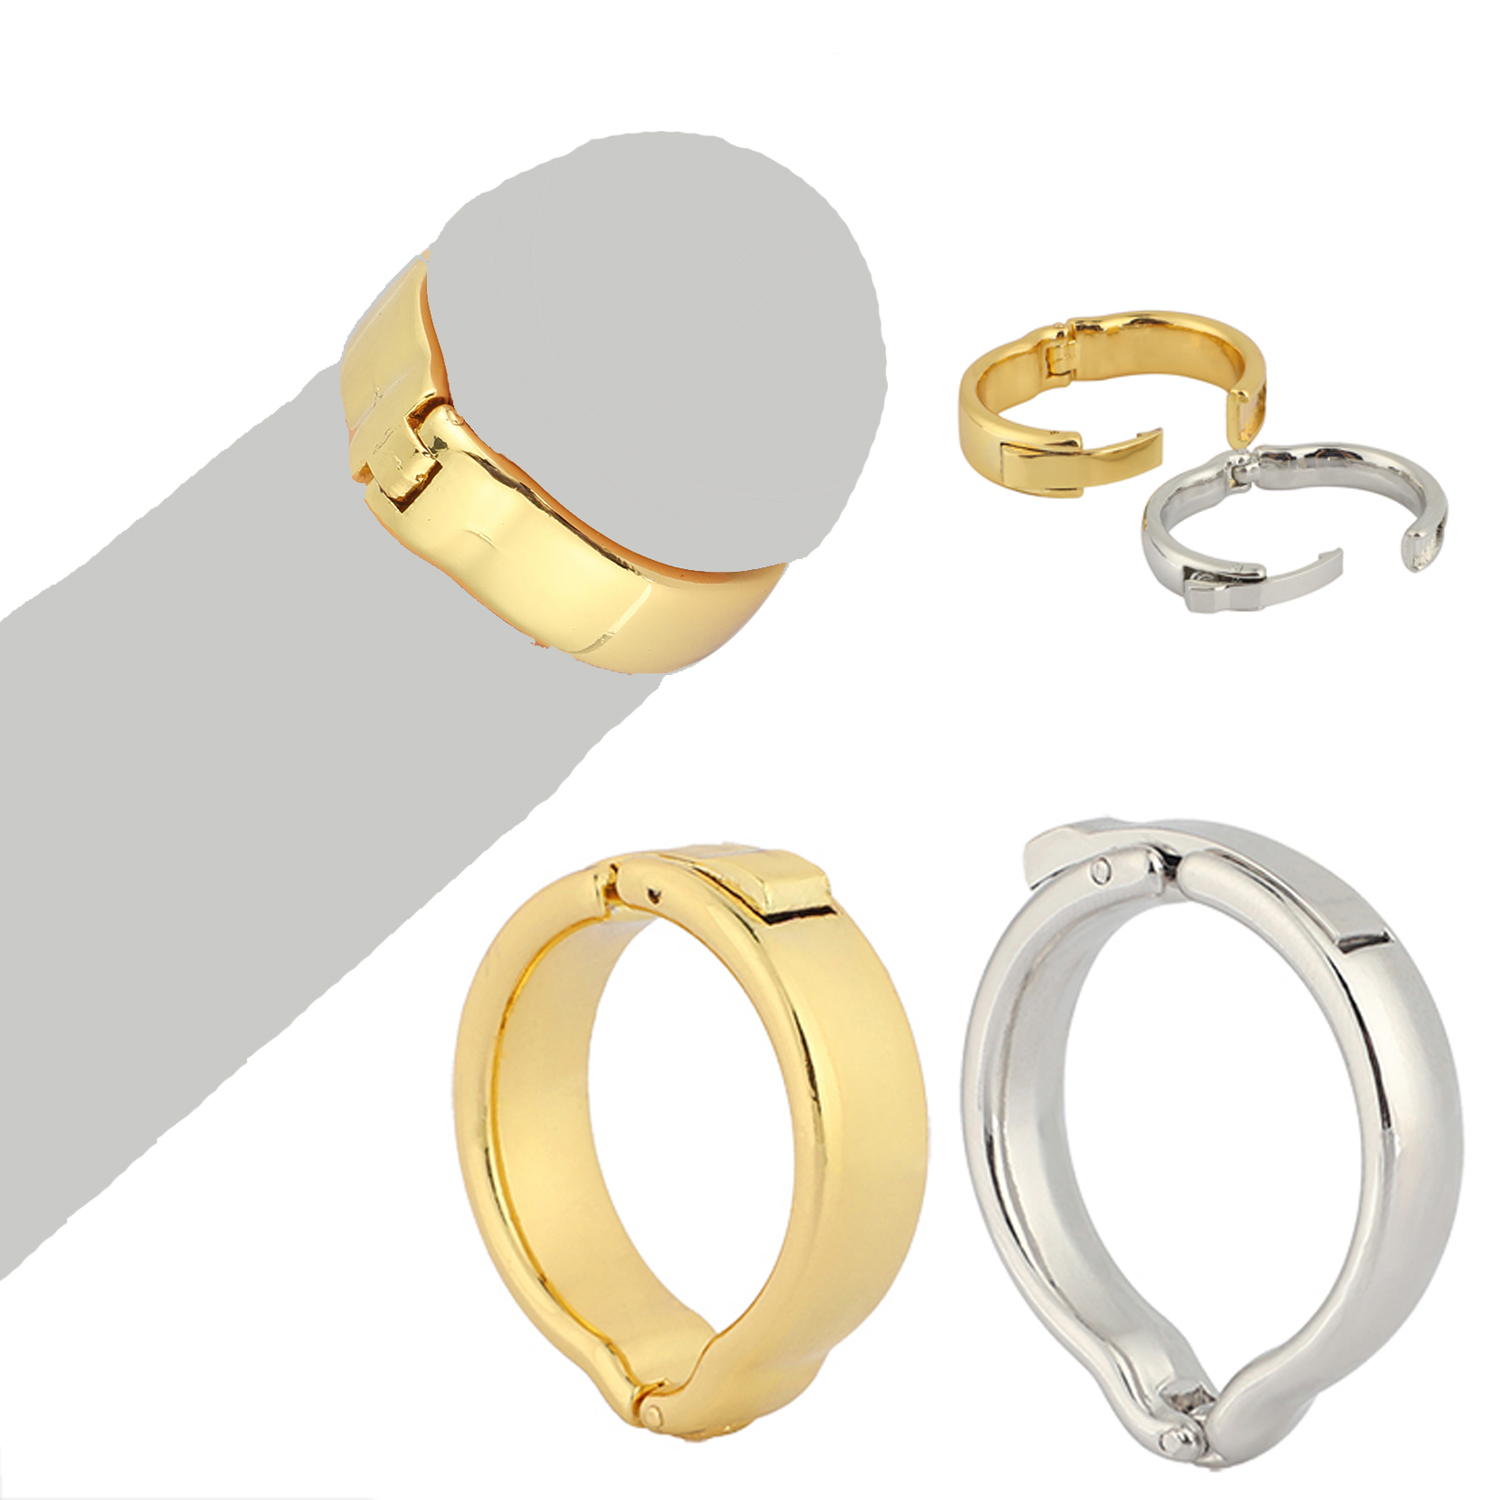 Metal Foreskin Correction Penis Ring, Adjustable Size Glans Physiotherapy Ring, Male Circumcision Ring V Type Cock Ring Sex Toys